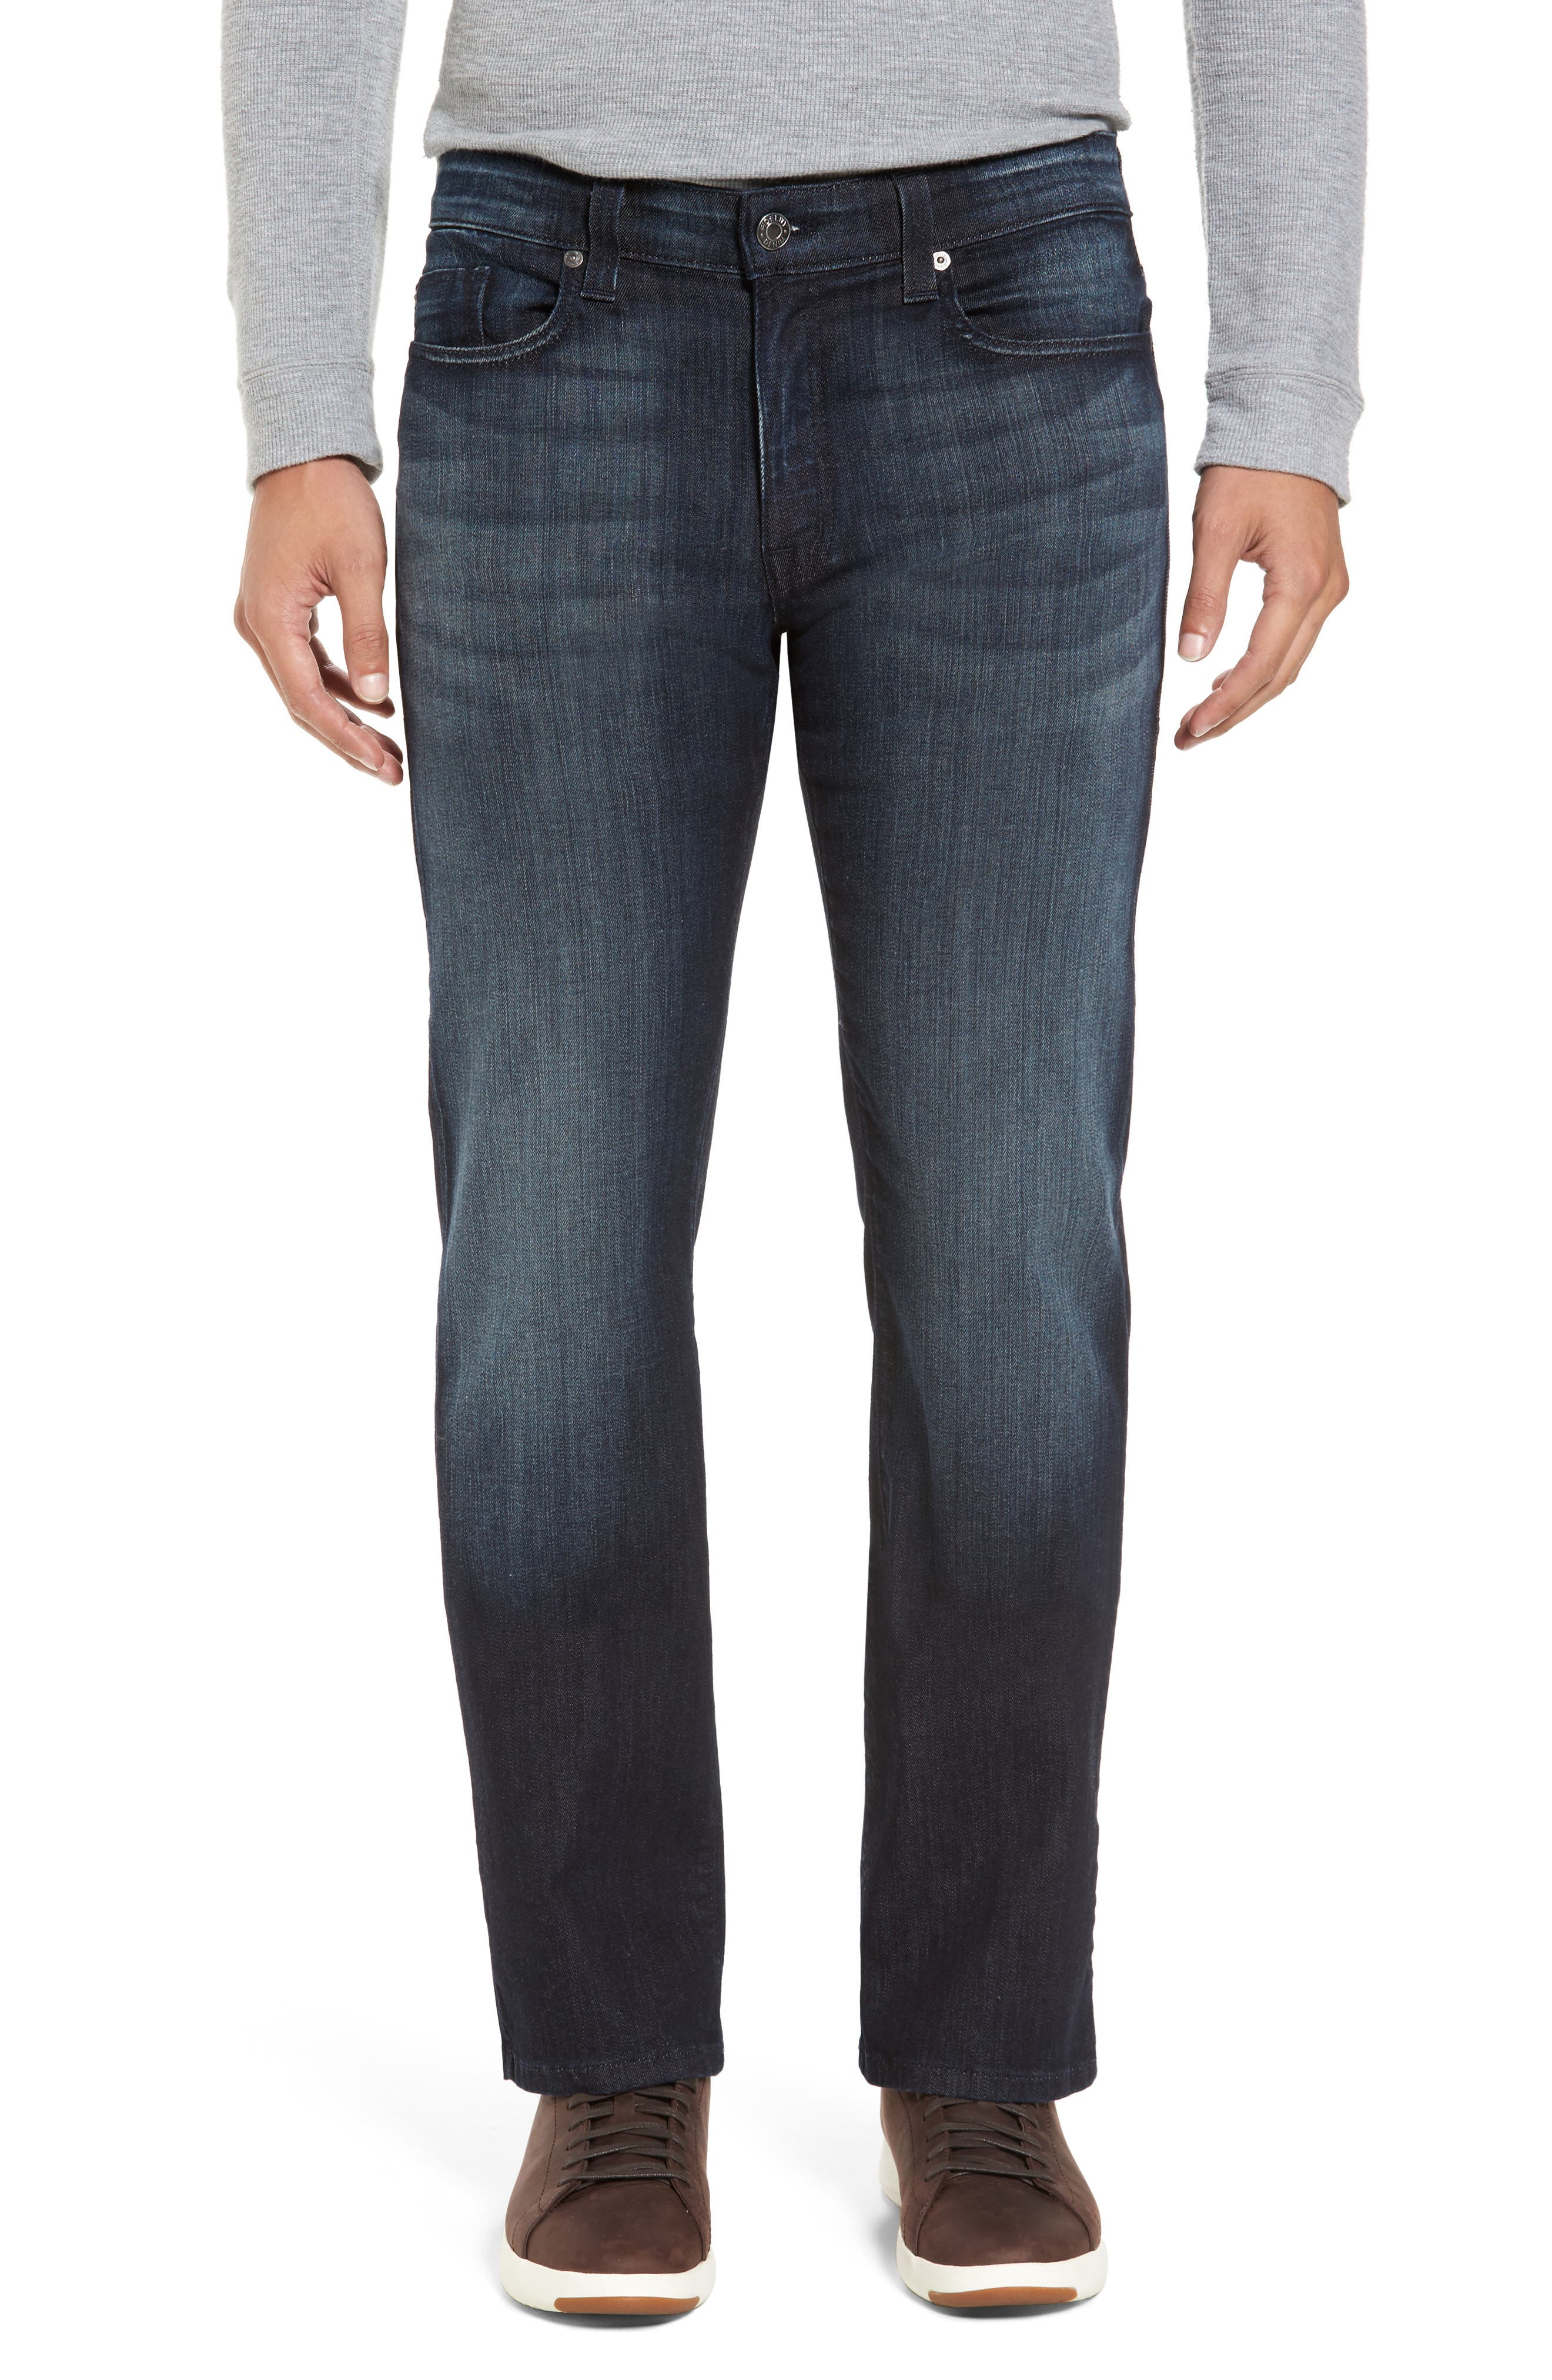 5011 Relaxed Fit Jeans,                         Main,                         color, 400